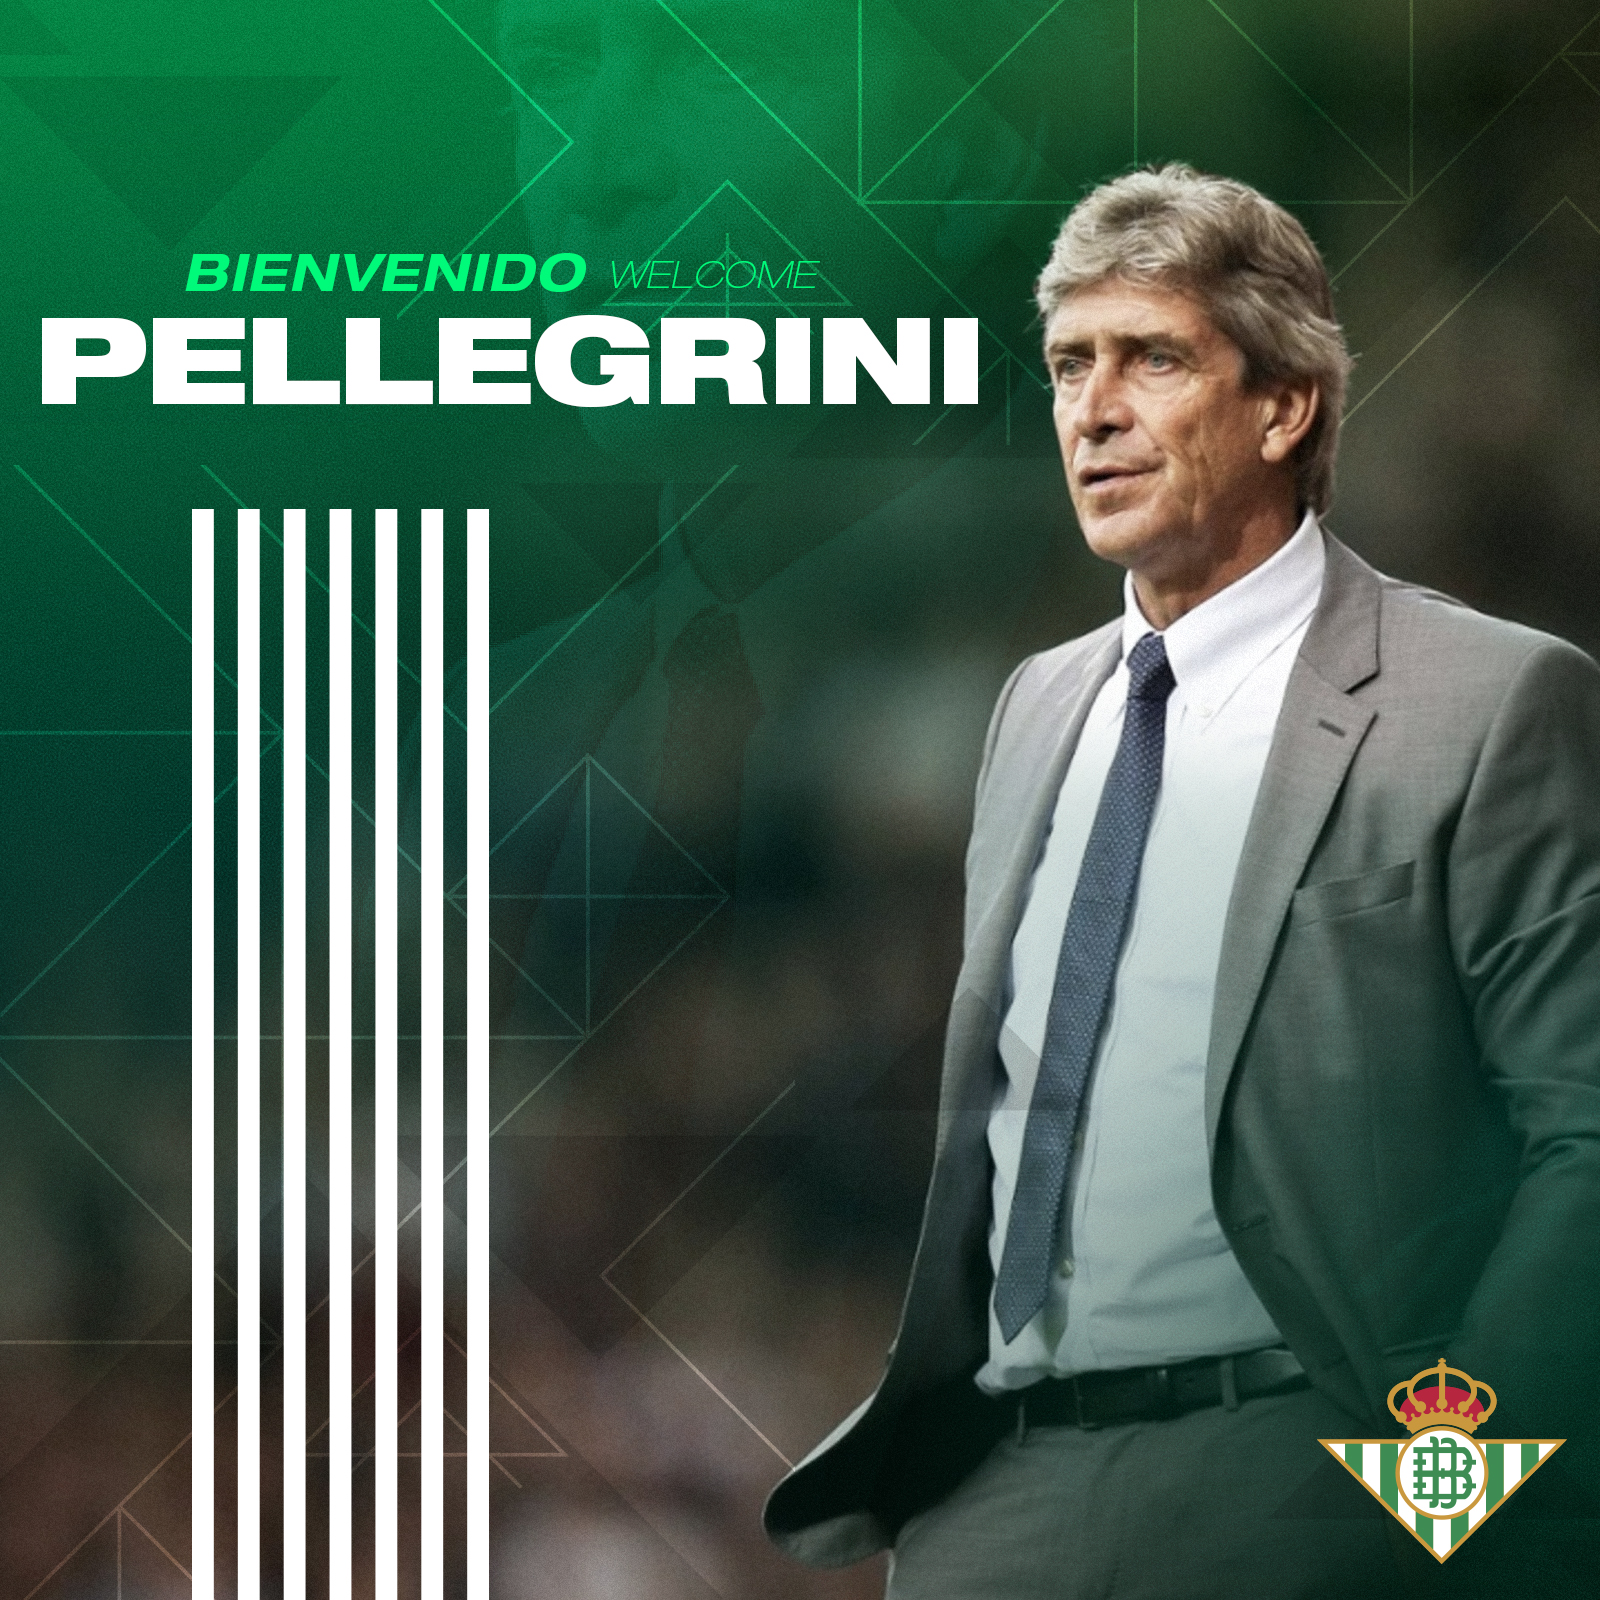 Manuel Pellegrini takes over at Real Betis